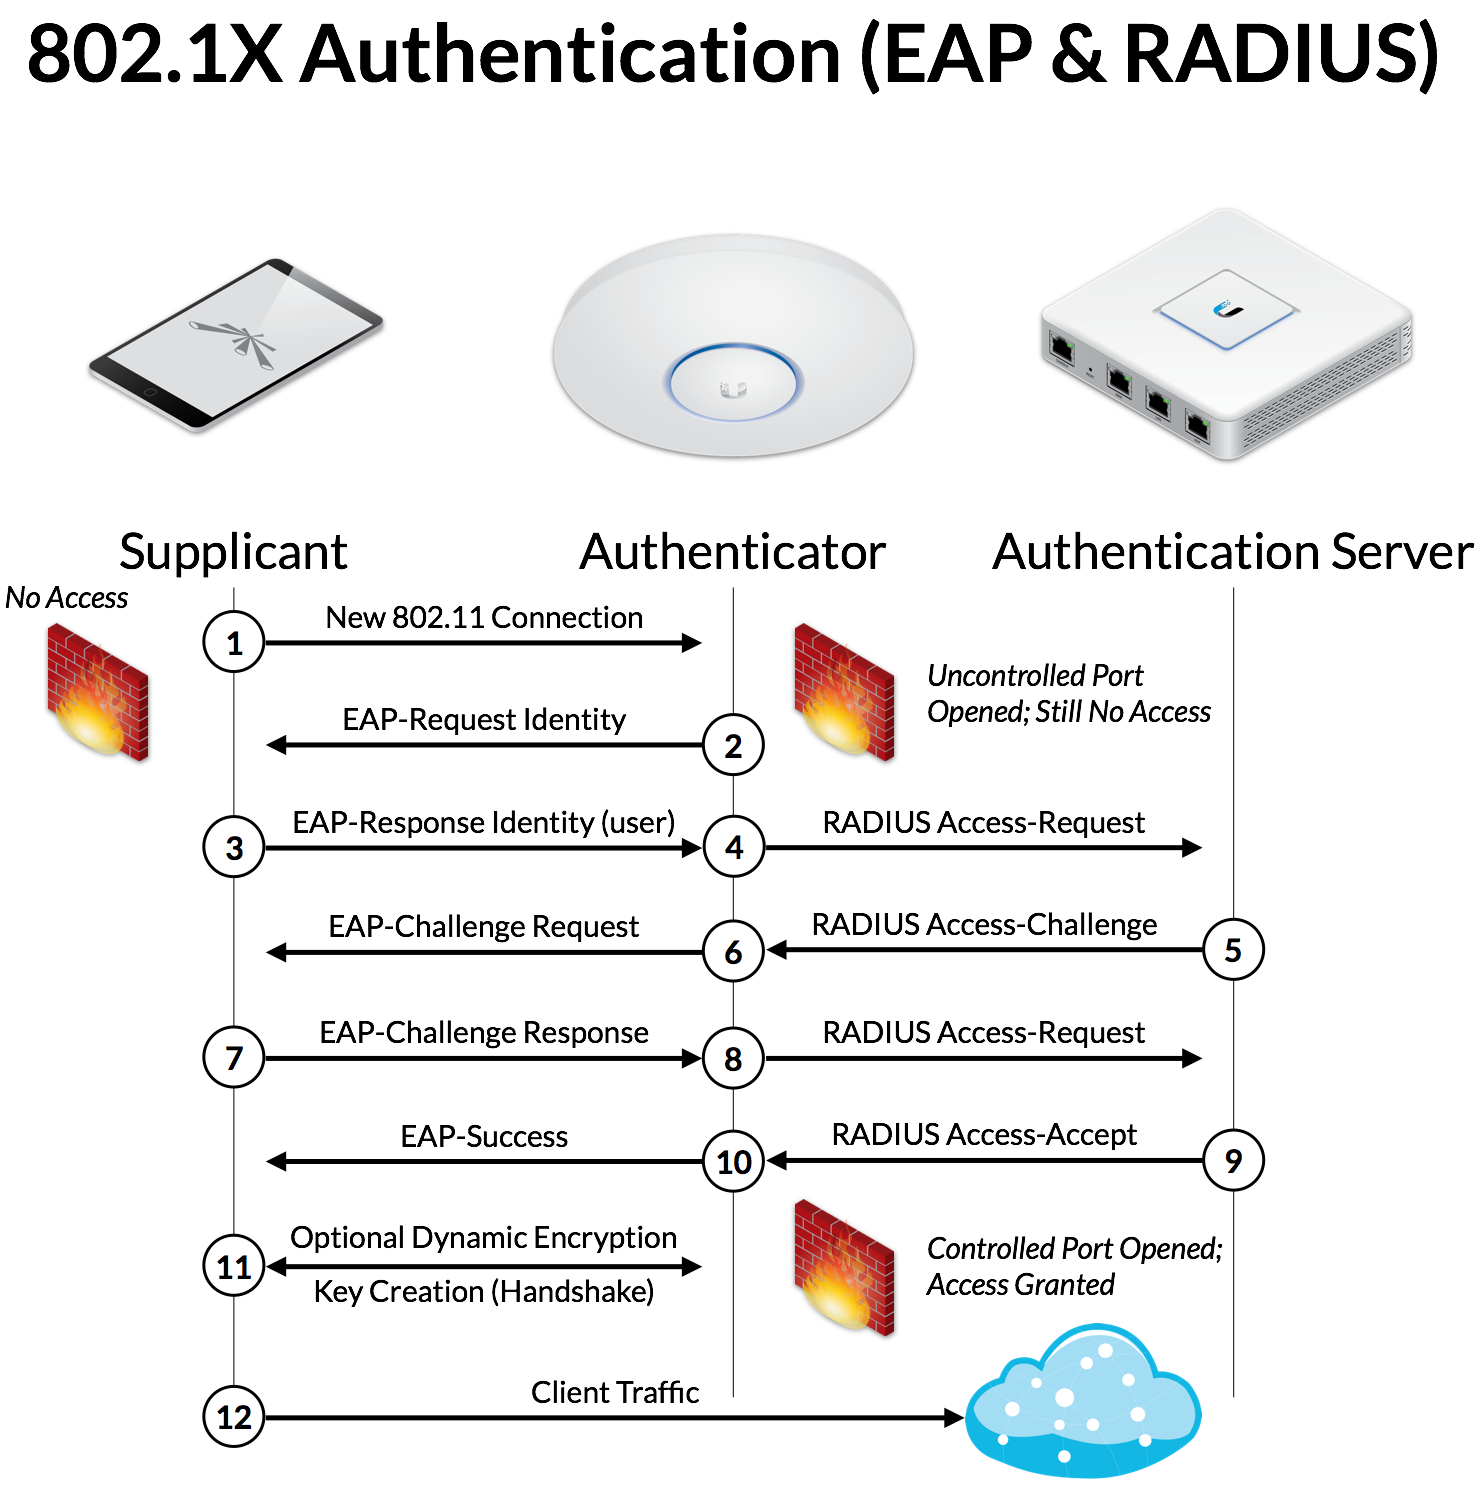 Intro to Networking - AAA, 802 1X, EAP & RADIUS – Ubiquiti